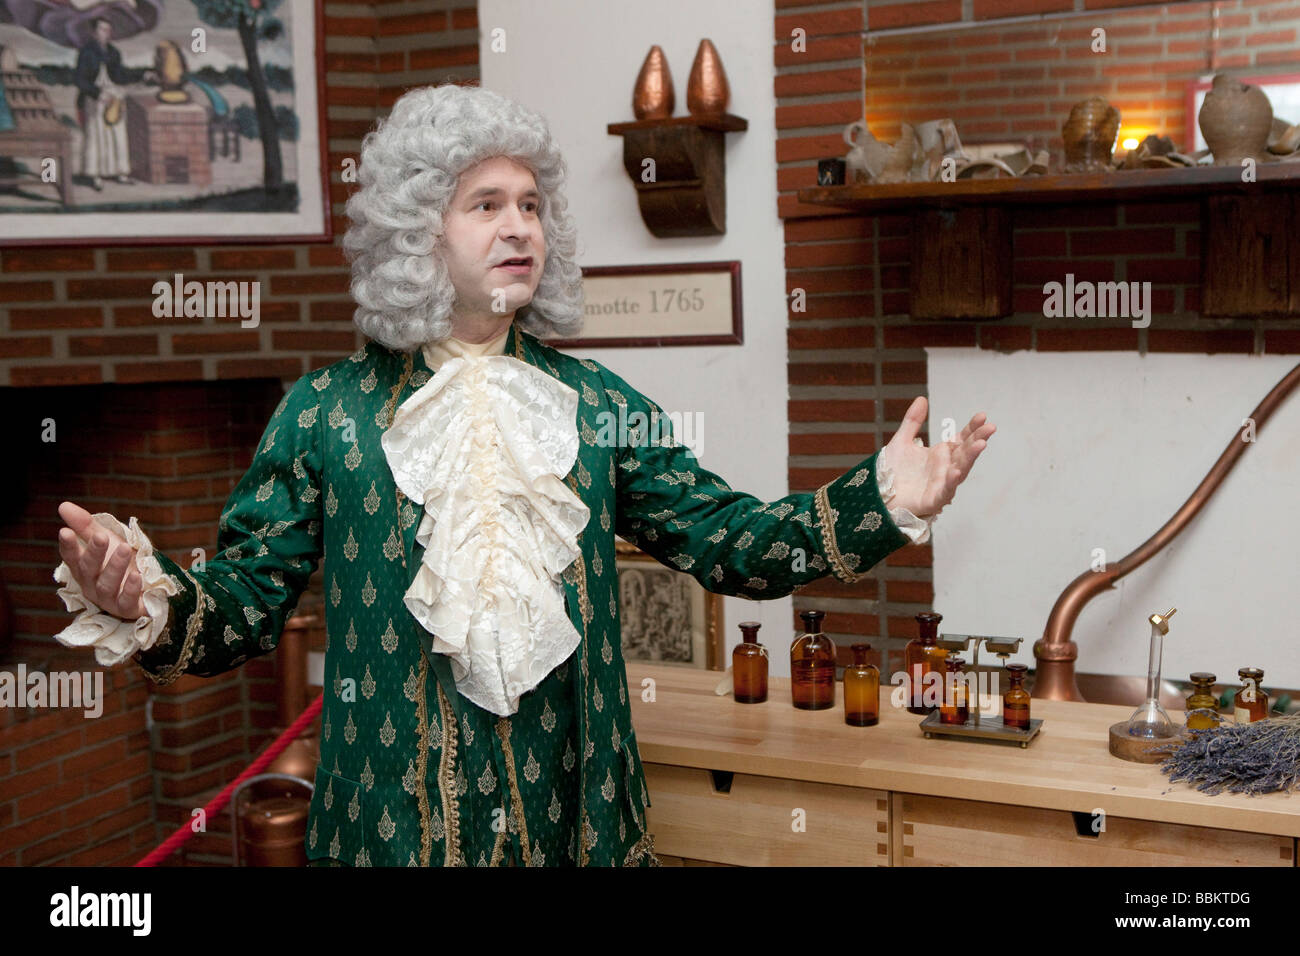 Guidance in a period costume through the Farina Museum - Stock Image